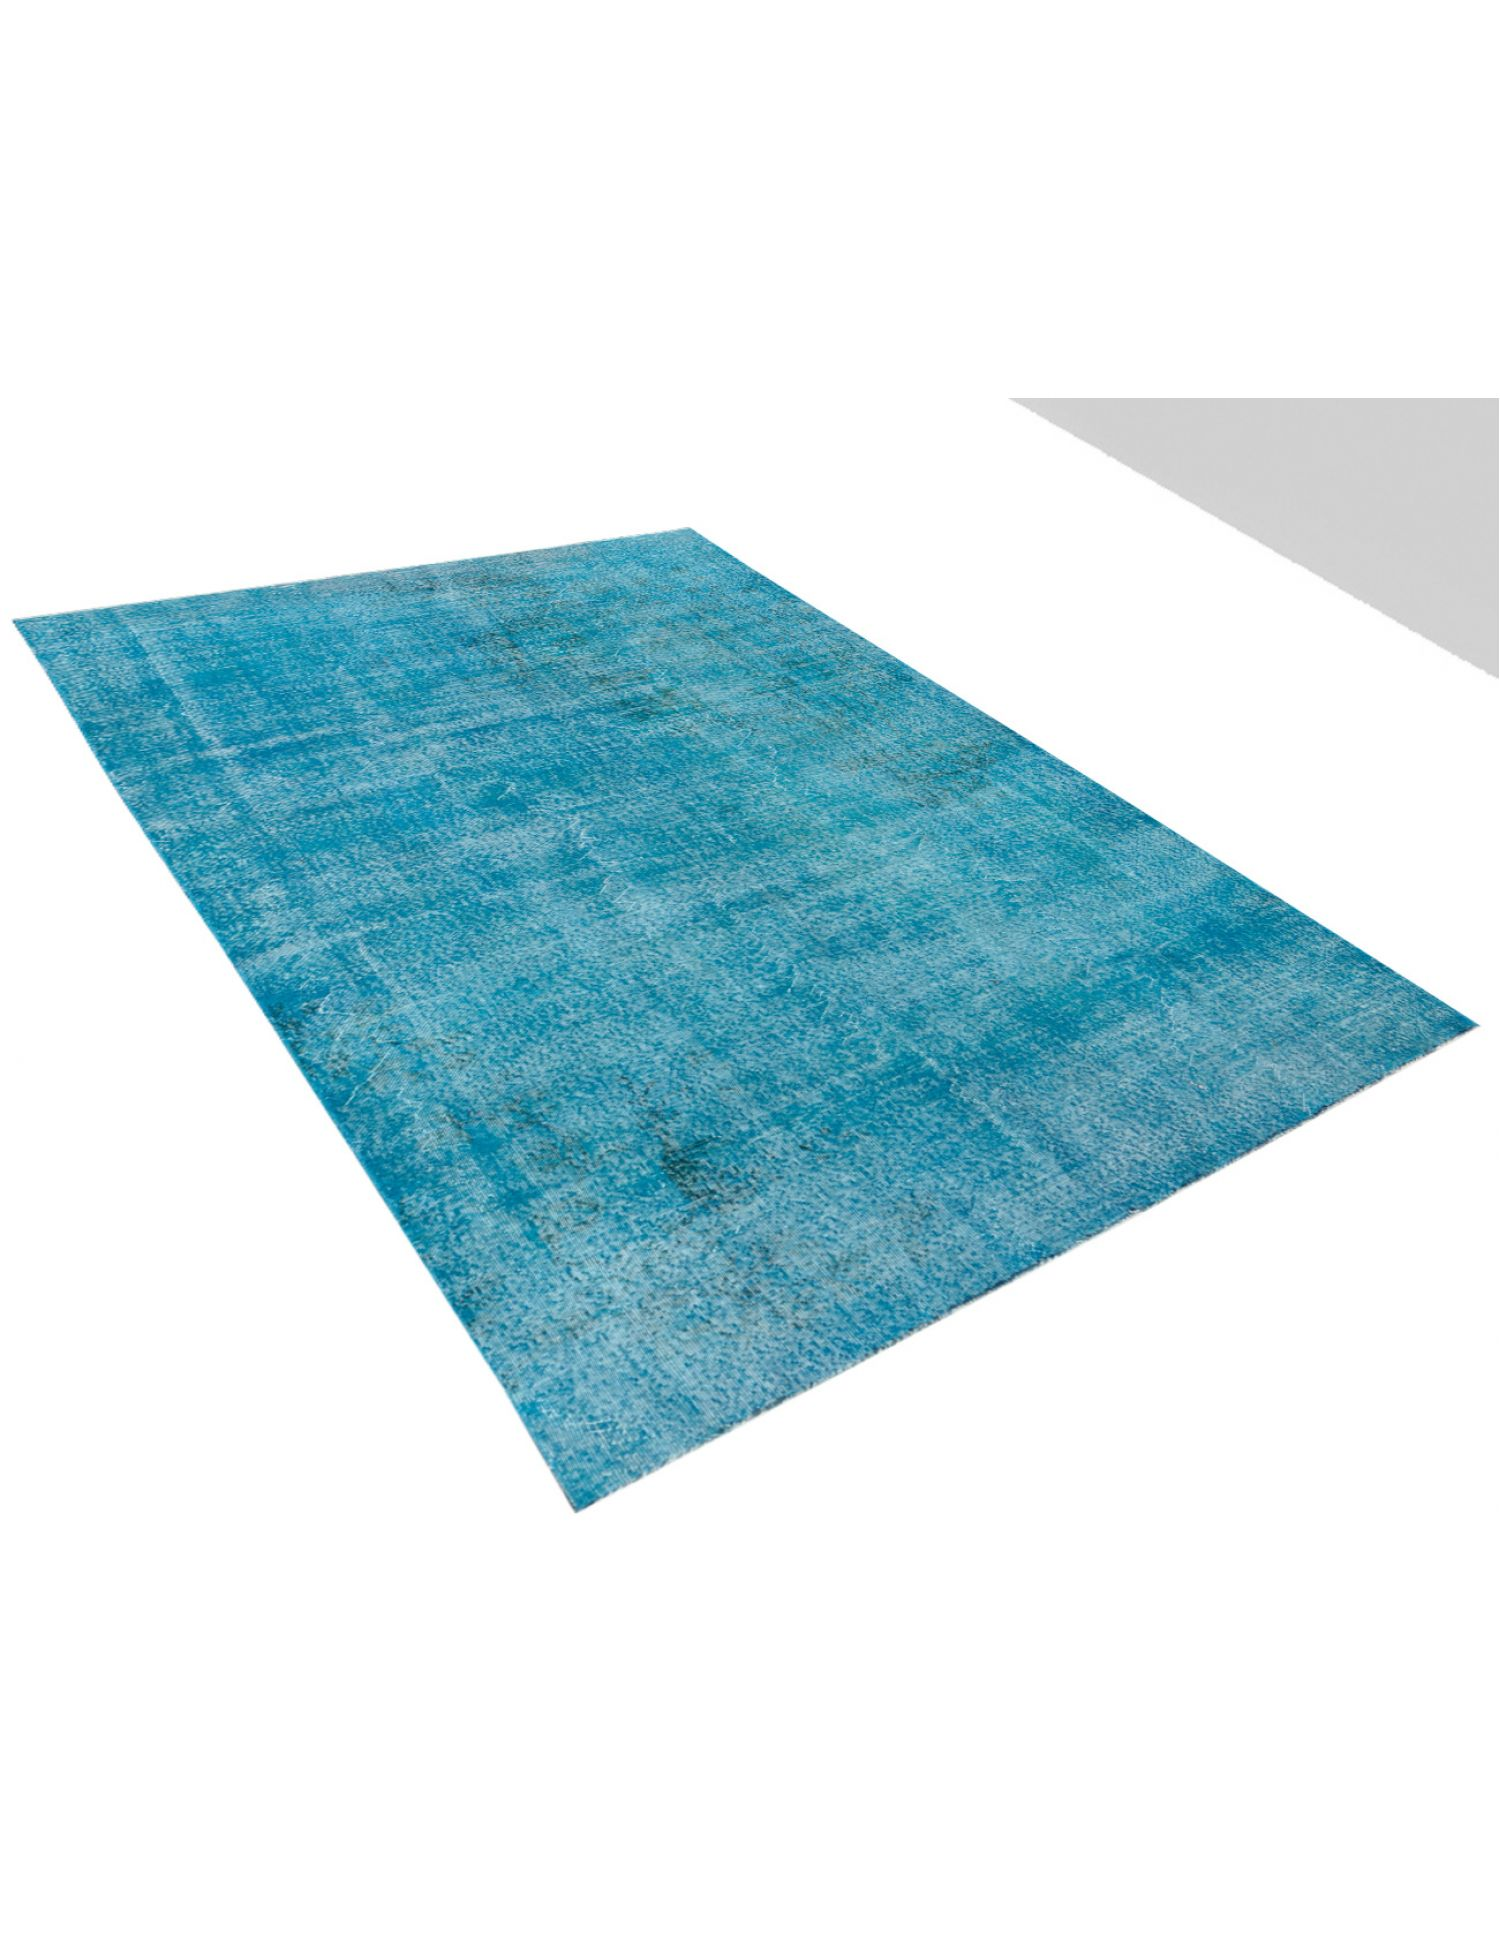 Vintage Carpet  blue <br/>340 x 180 cm